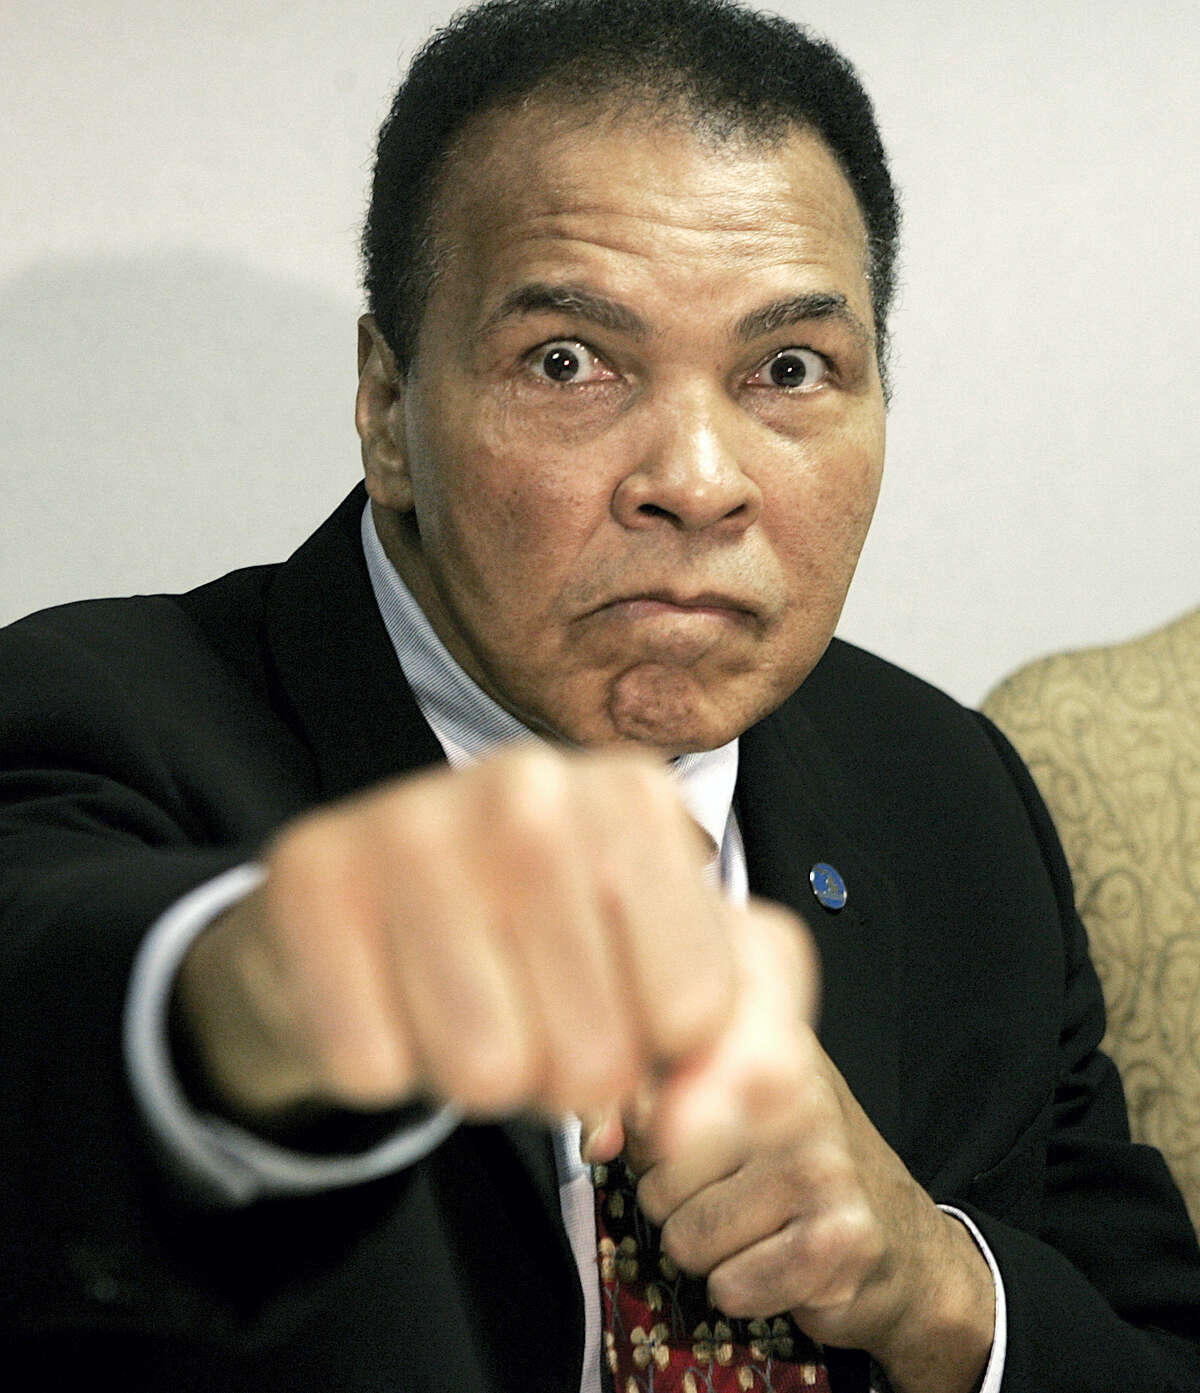 This is an Oct. 4, 2006 photo showing Muhammad Ali posed in Detroit. The Muhammad Ali Center in Kentucky says it's planning a four-day celebration early next year to coincide with what would have been the boxing great's 75th birthday. The community activities at the downtown center in Ali's hometown of Louisville will start Jan. 14 and continue through Ali's birthday on Jan. 17.